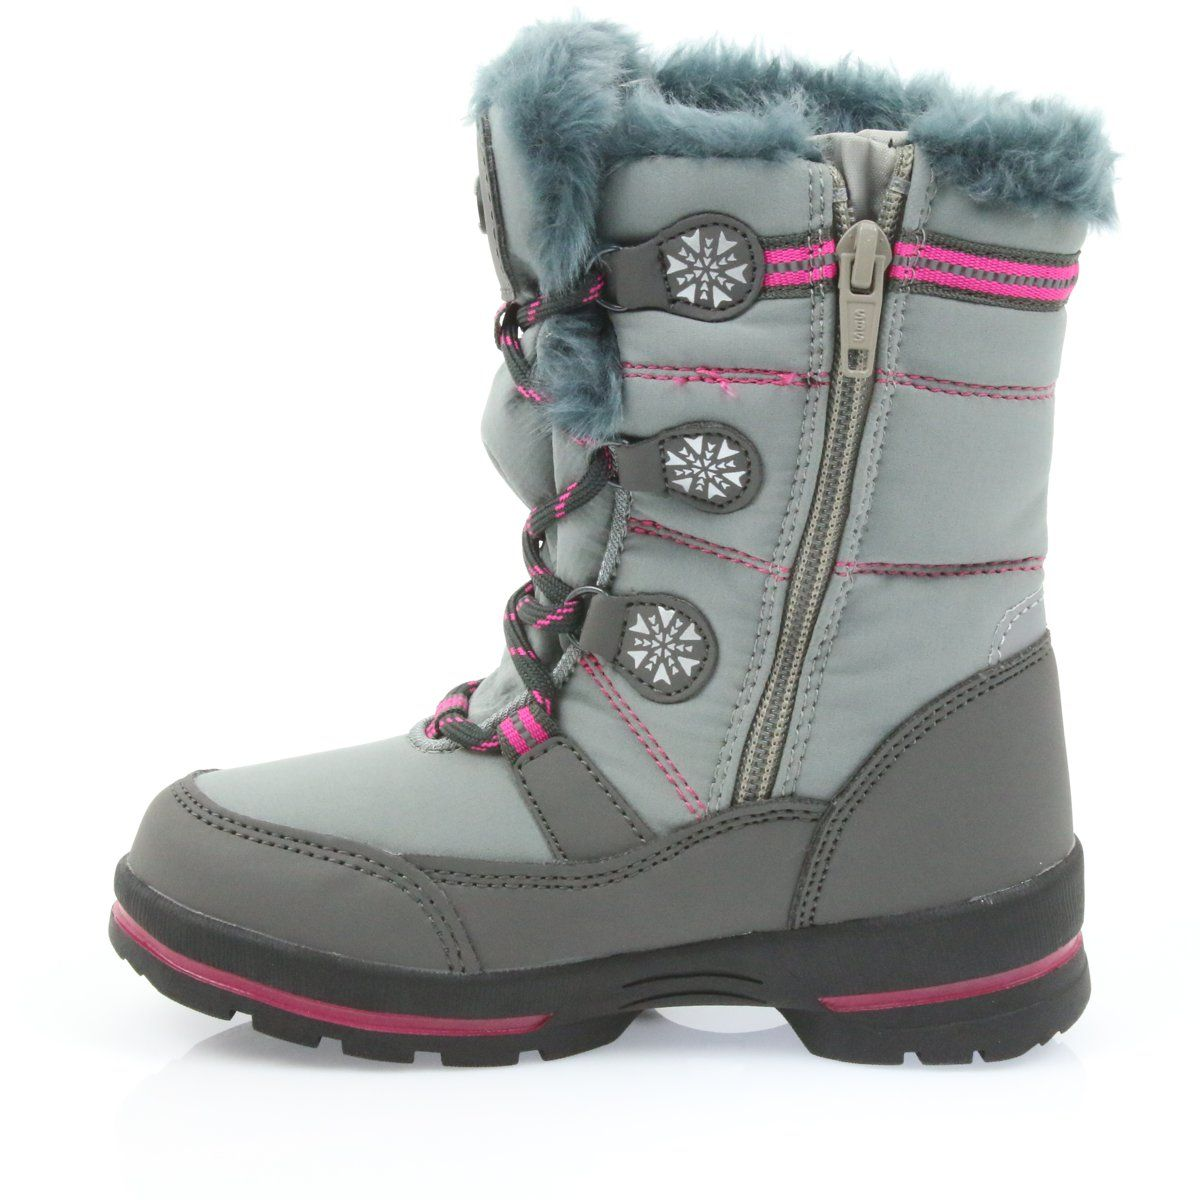 American Club American Winter Boots With 702sb Membrane Grey Pink Winter Boots Boots Childrens Boots